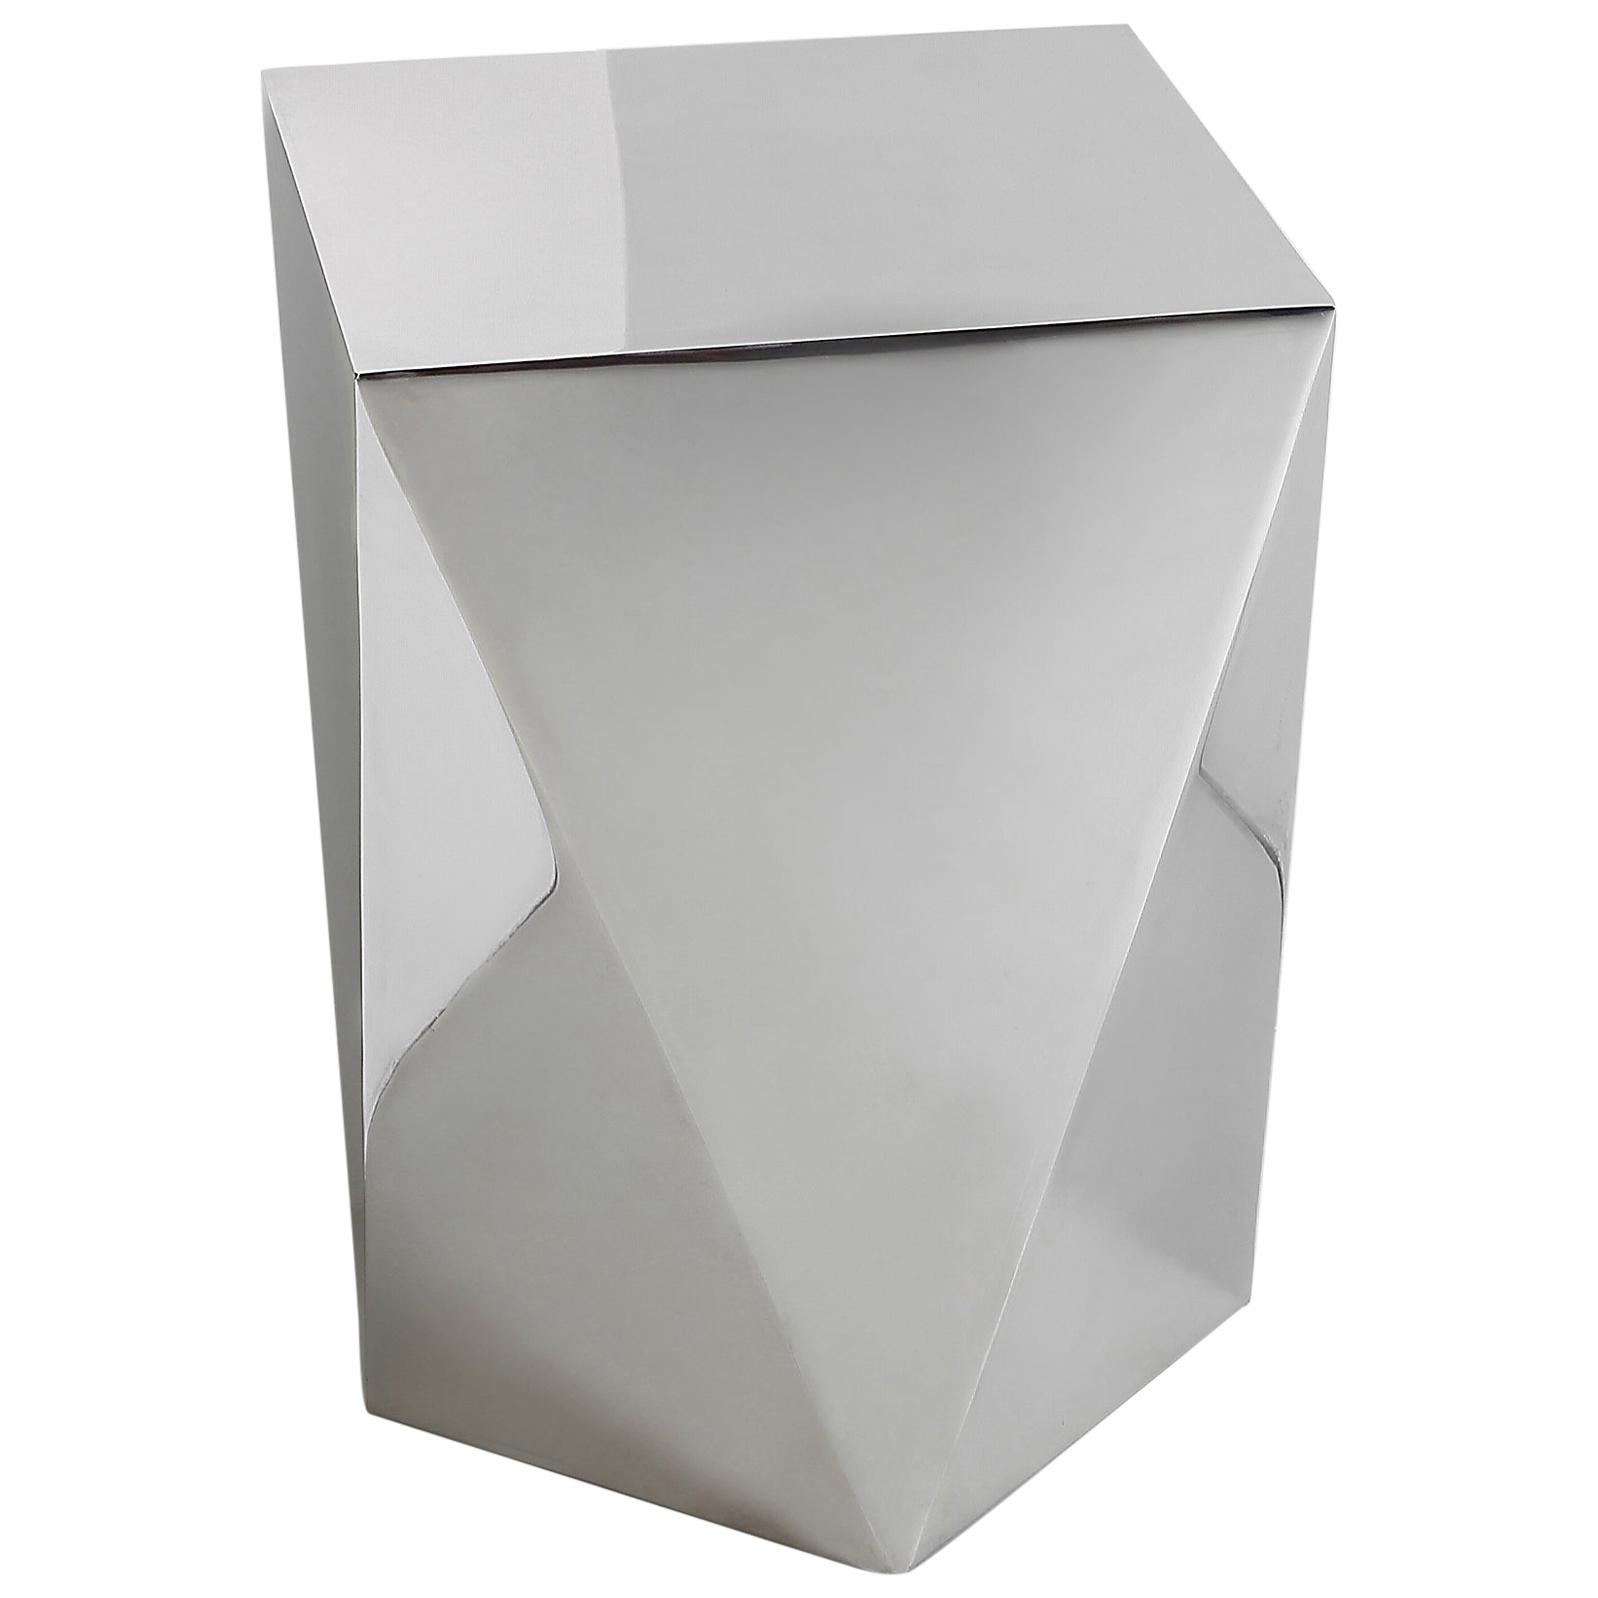 Carat S, Pedestal in Hand Polished Stainless Steel